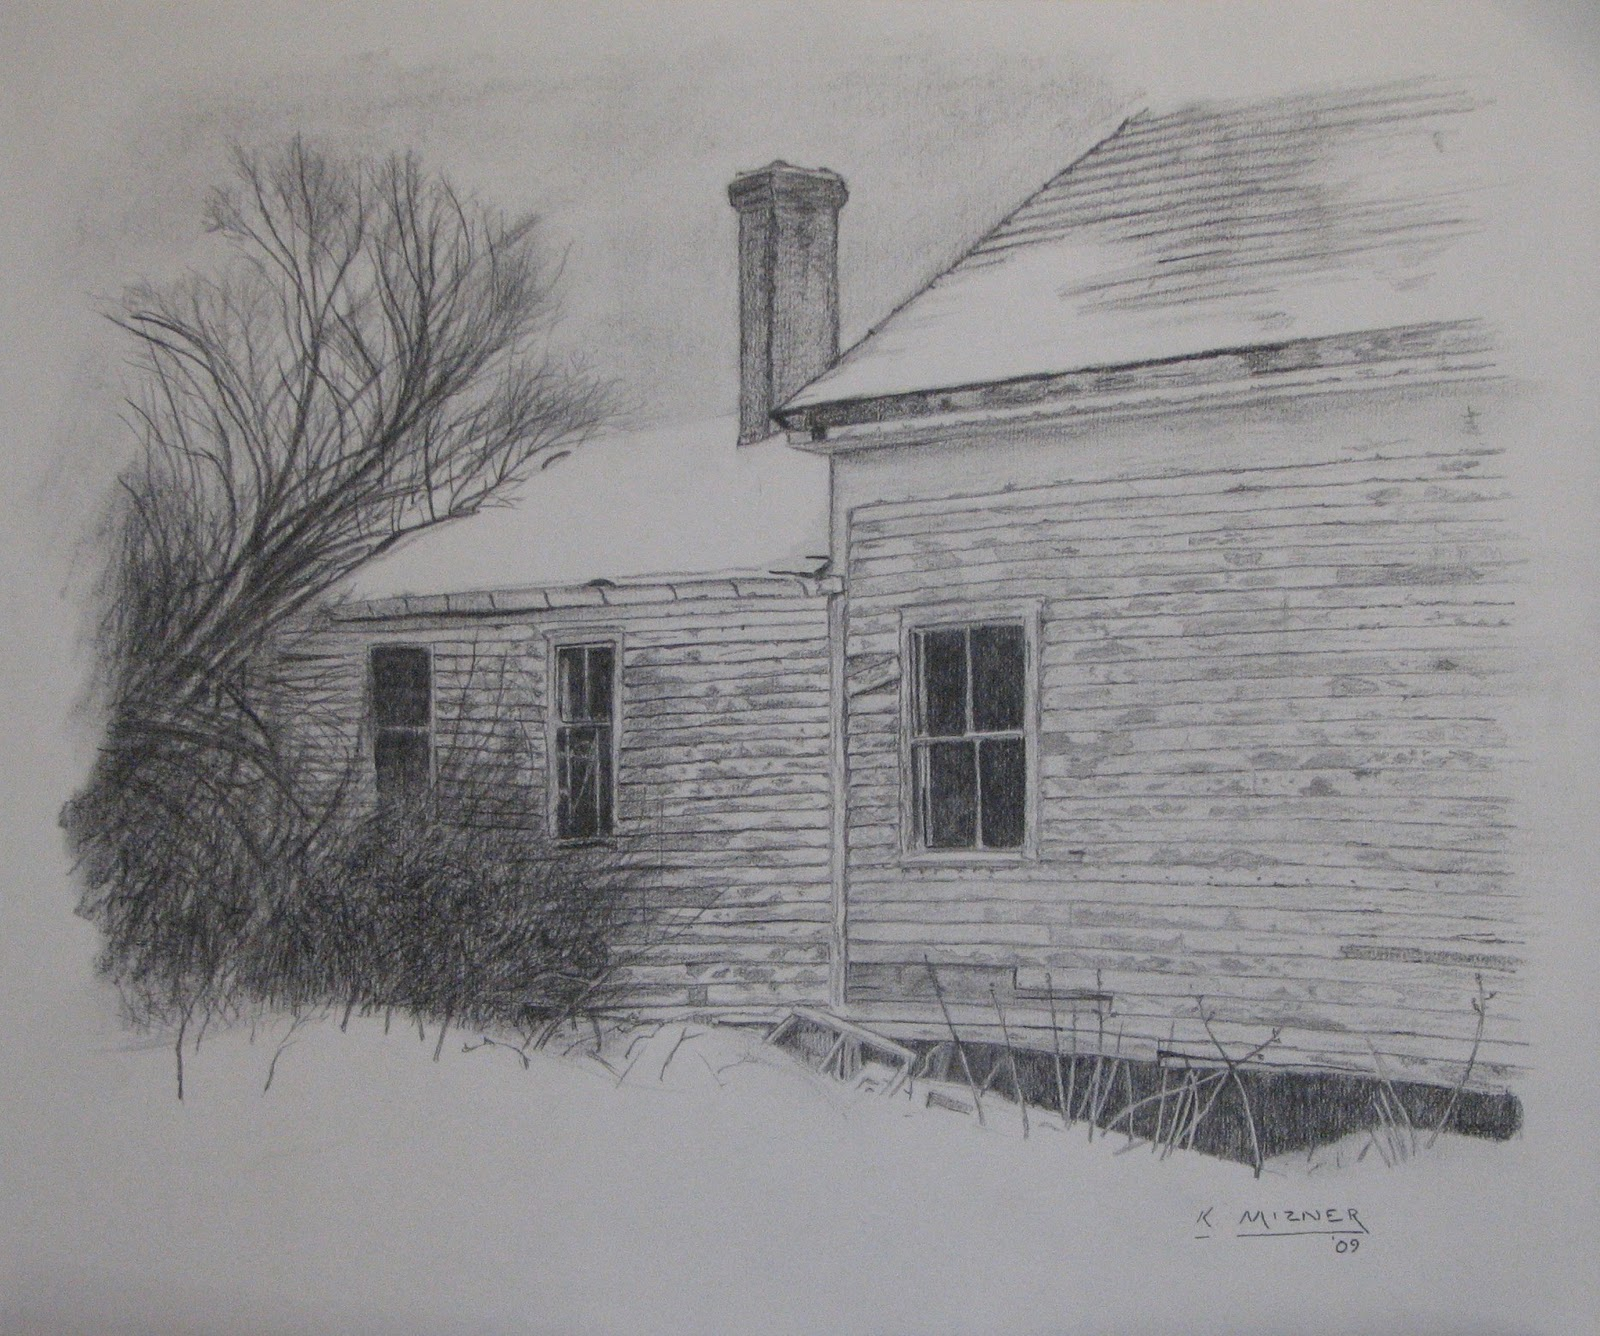 Drawing  Old Houses http://kmizner.blogspot.com/2010_10_01_archive.html